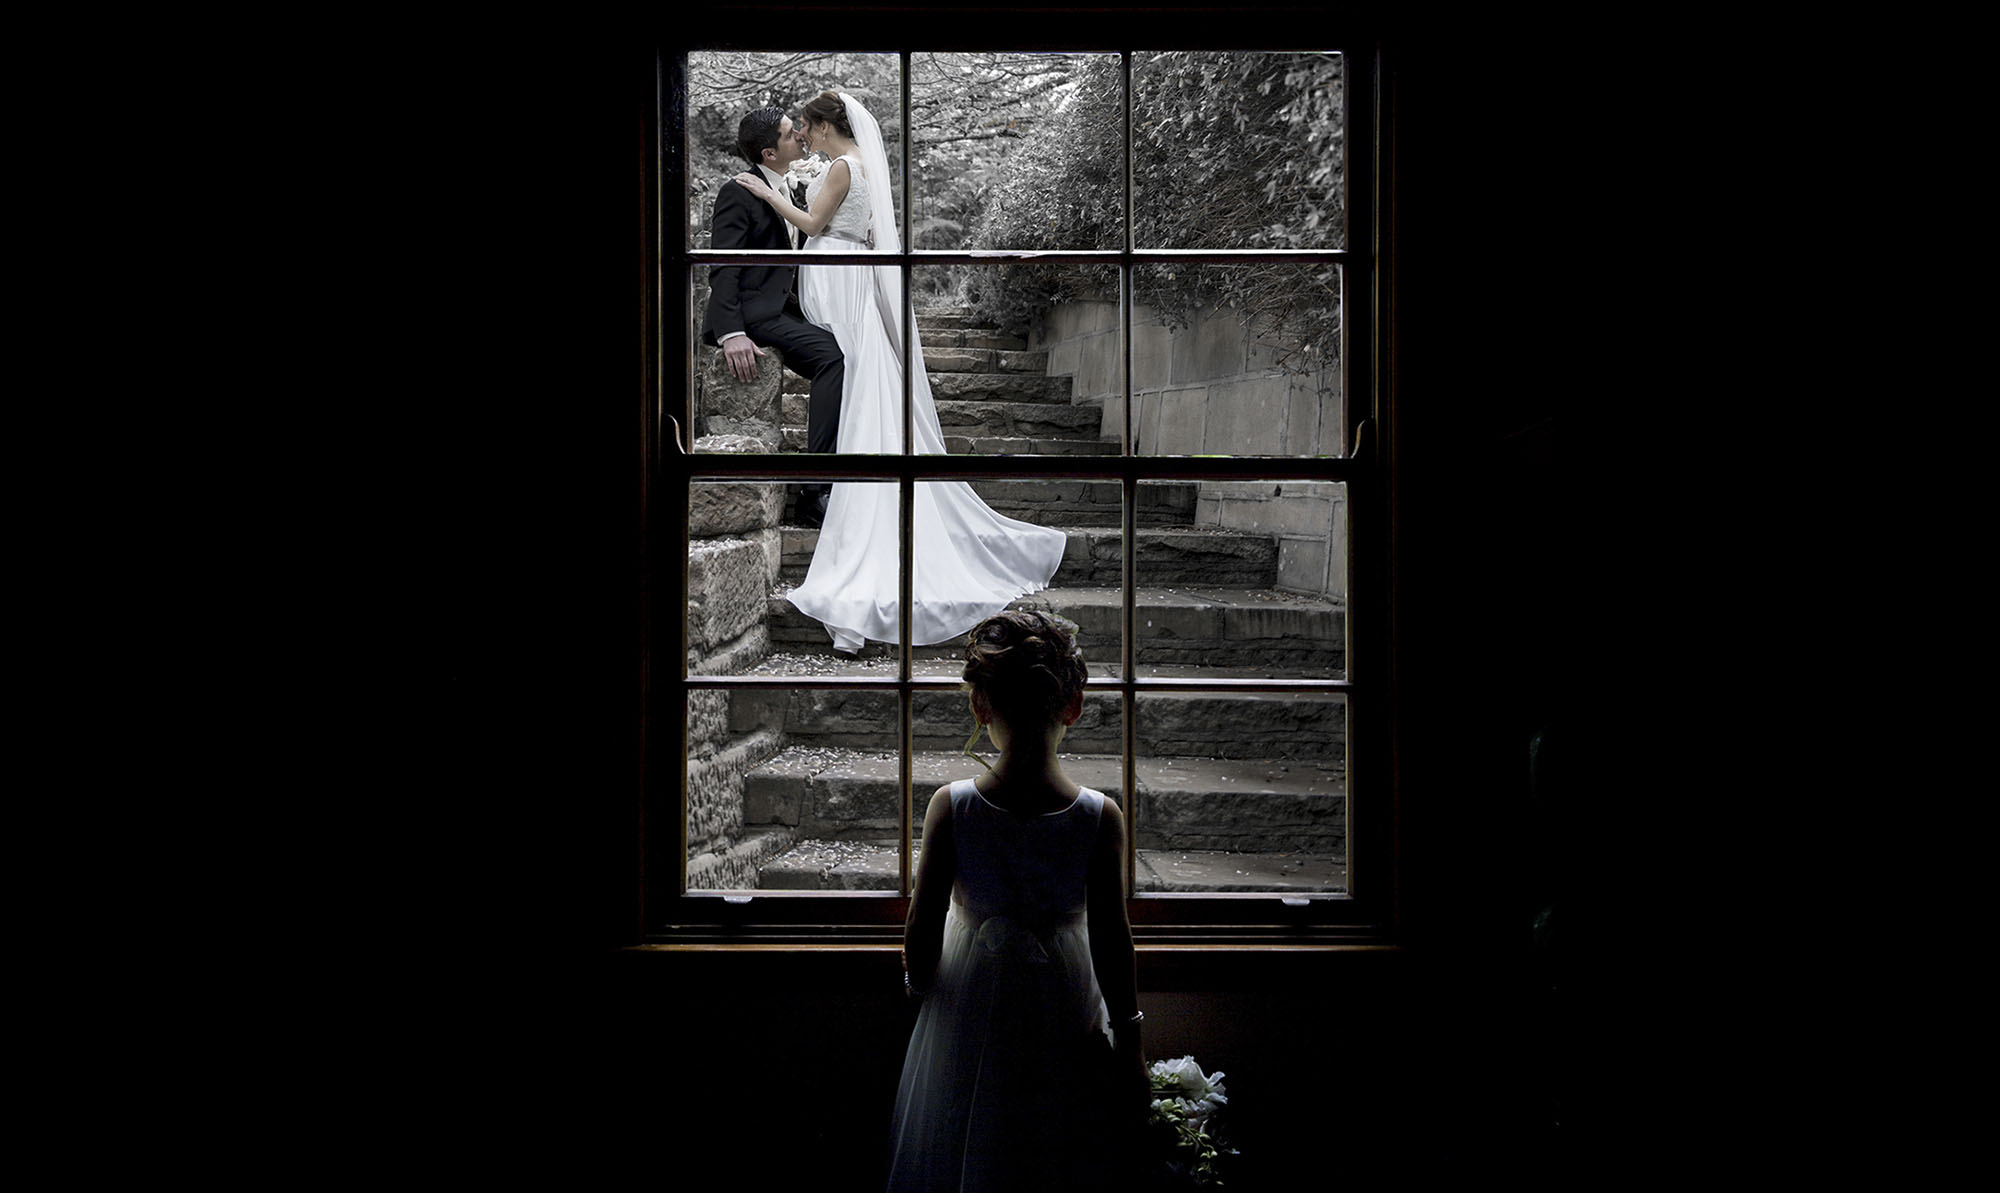 flower girl and window